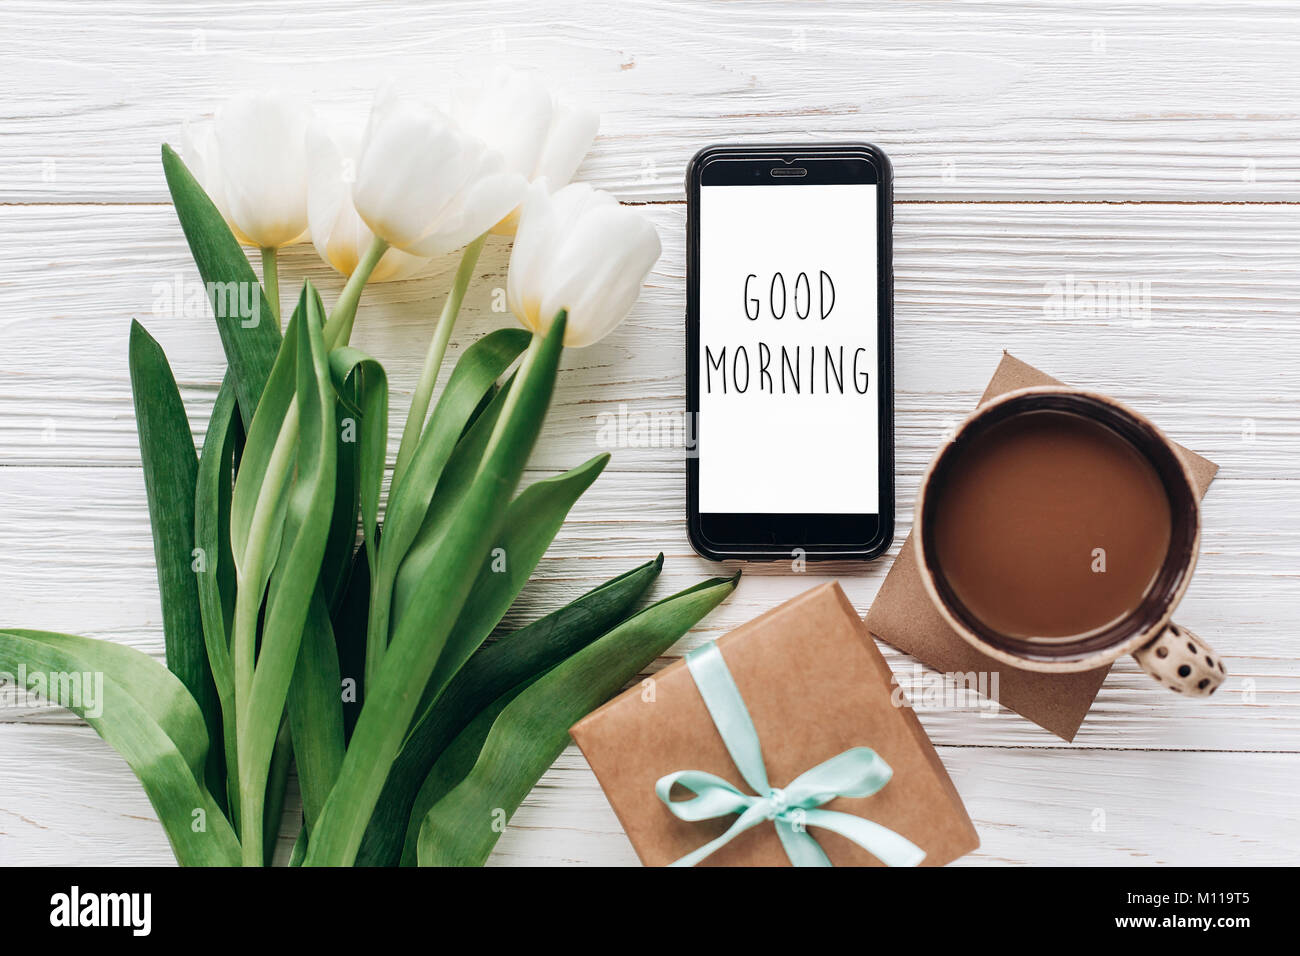 Good morning text sign on phone screen and stylish gift and tulips good morning text sign on phone screen and stylish gift and tulips and coffee on white wooden rustic background flat lay with flowers and gadget wit negle Gallery